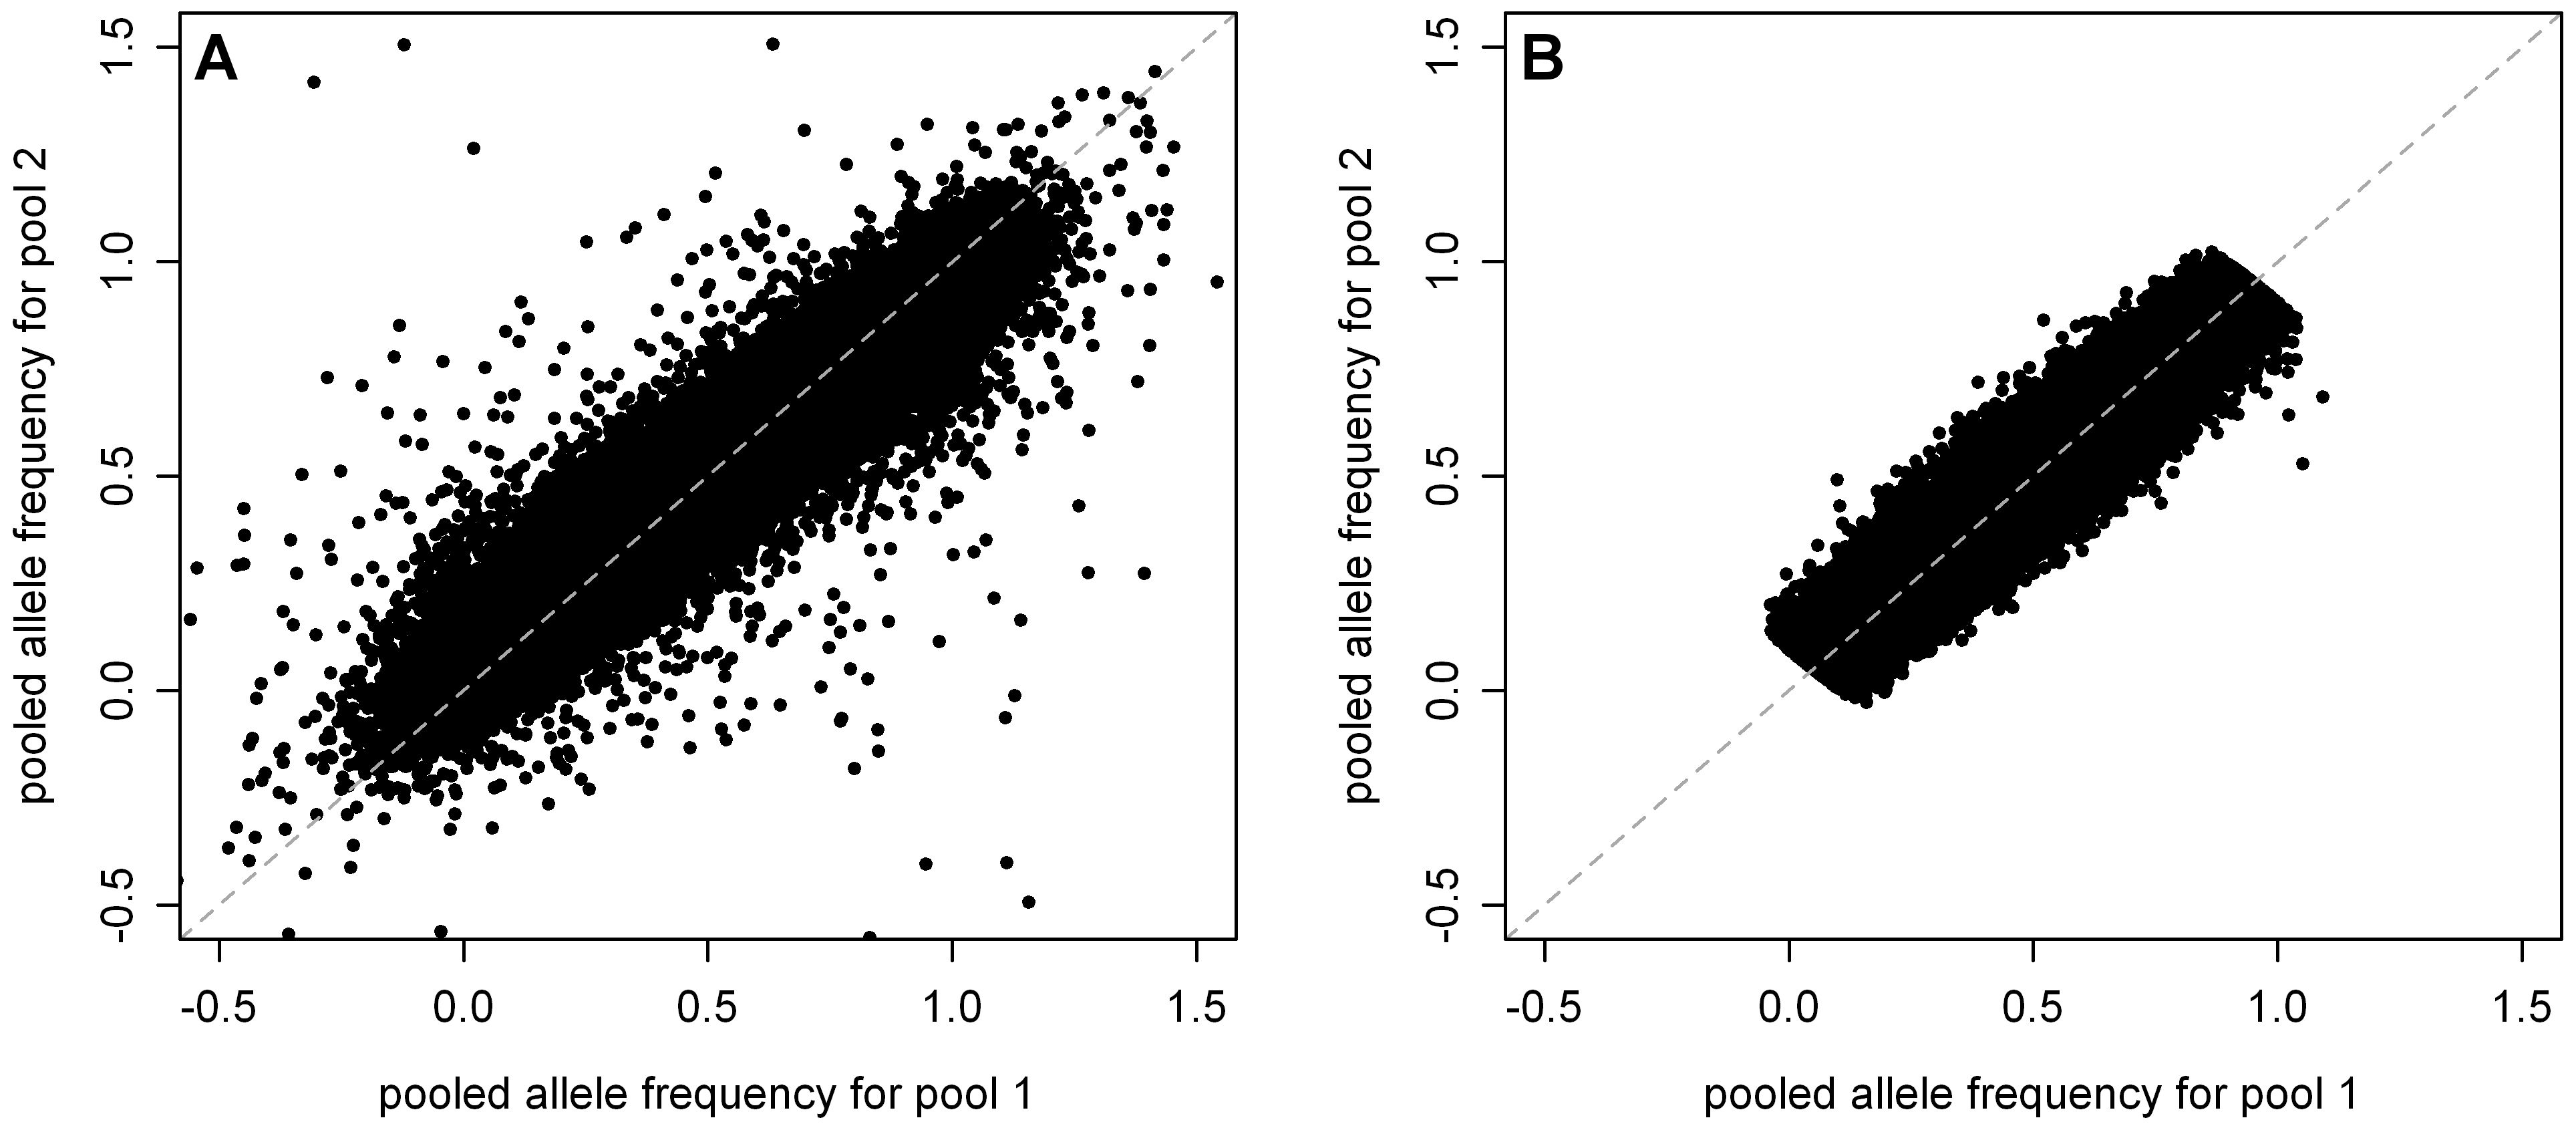 Estimated allele frequencies in MEC-H pool 1 versus MEC-H pool 2 before and after application of QC filters.